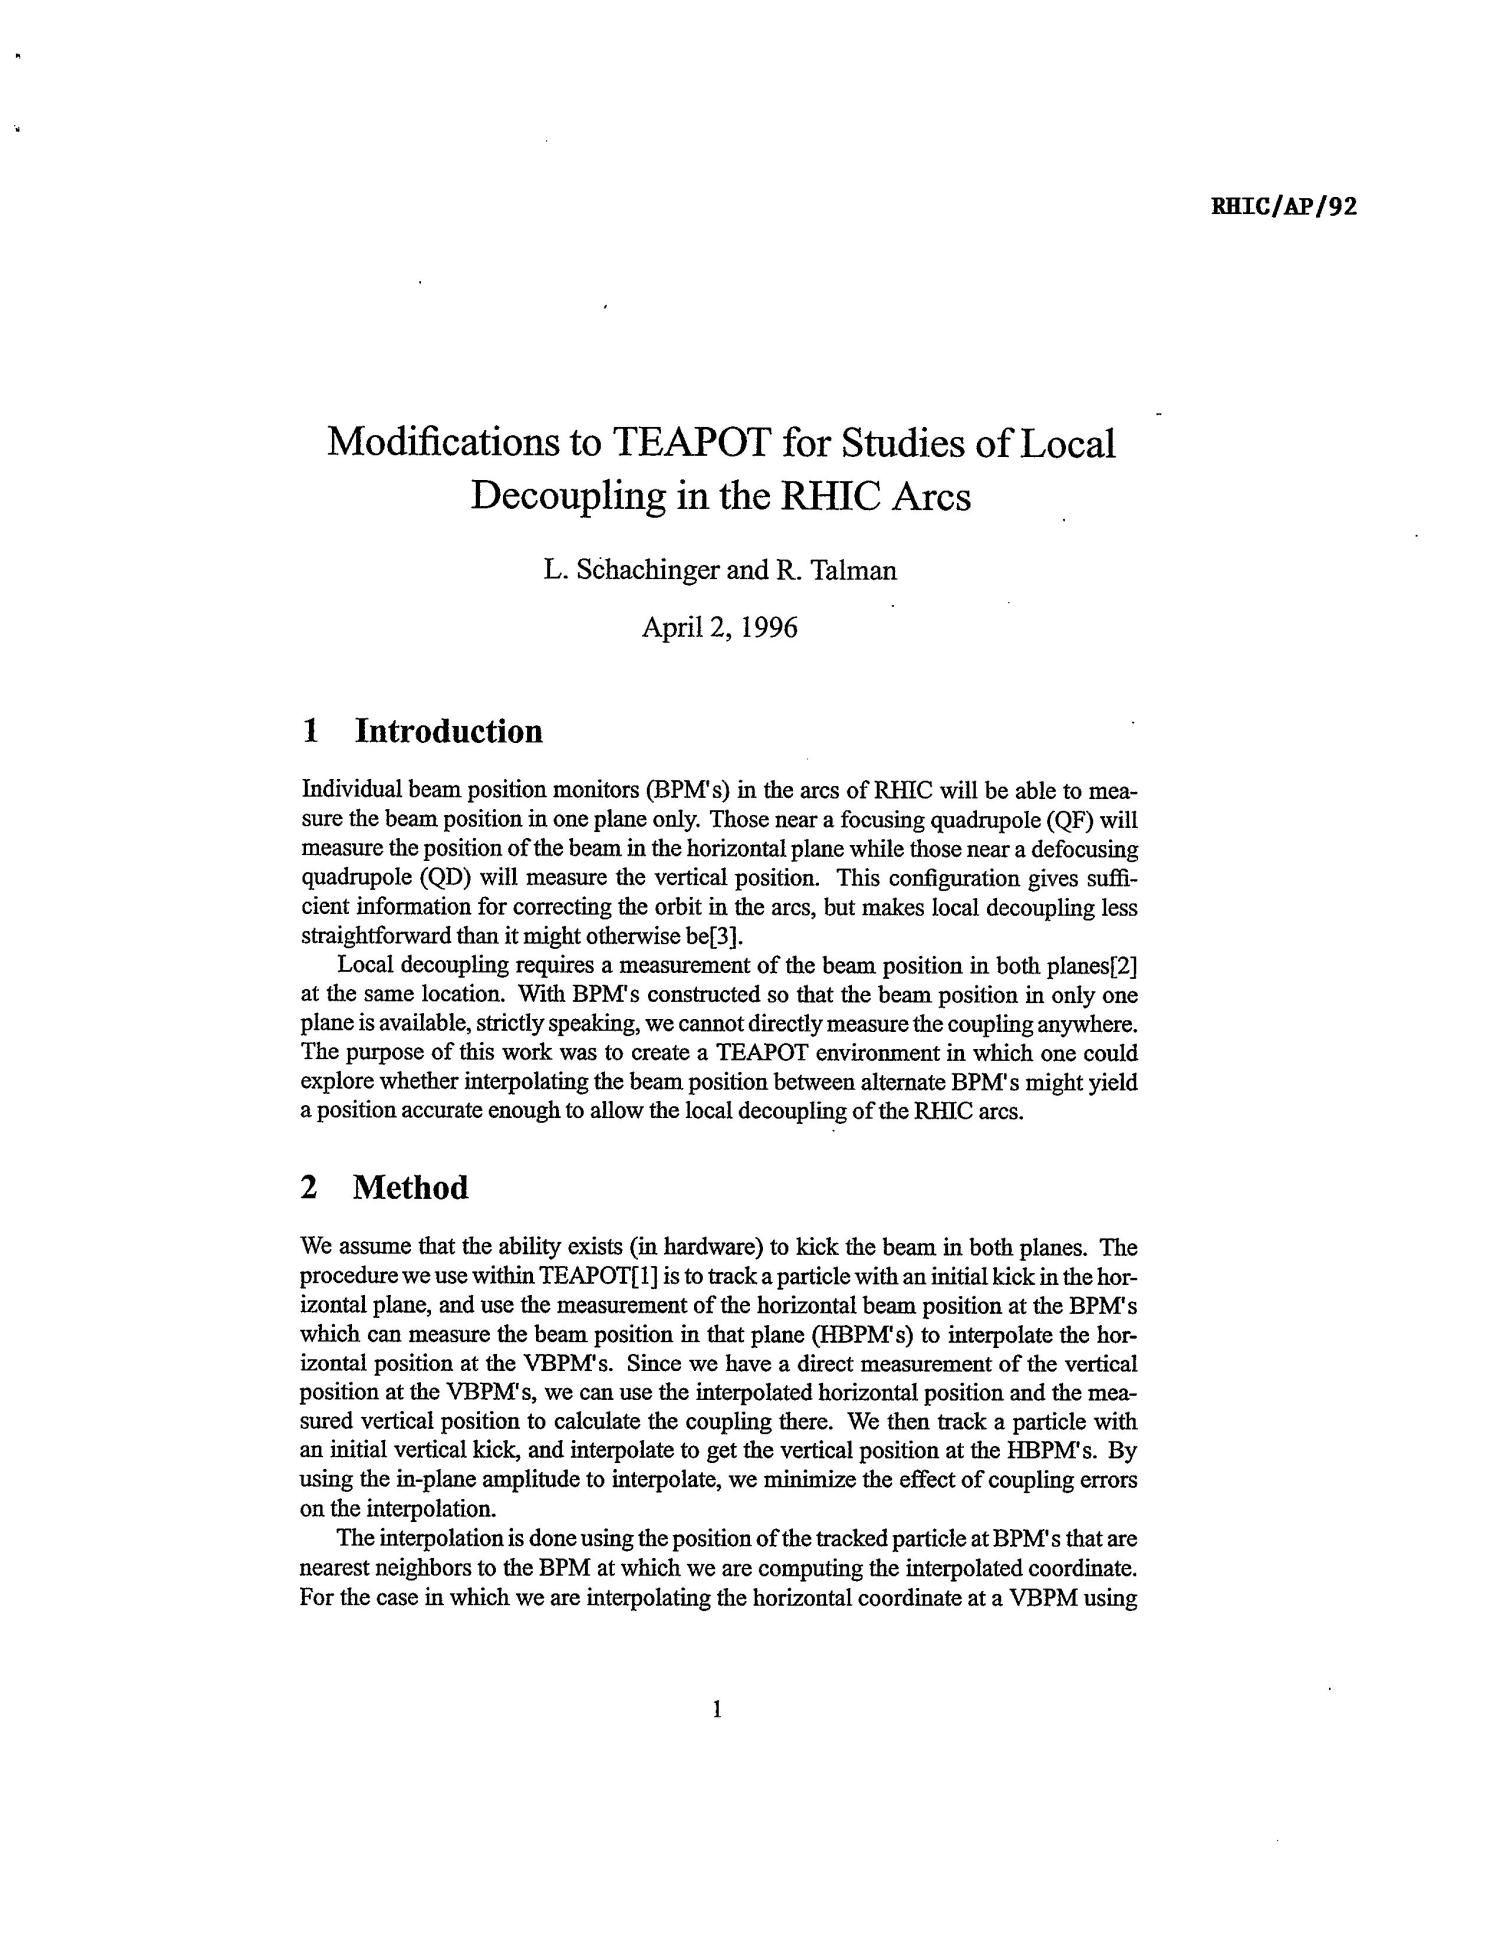 Modifications to TEAPOT for Studies of Local Decoupling in the RHIC Arcs                                                                                                      [Sequence #]: 1 of 5